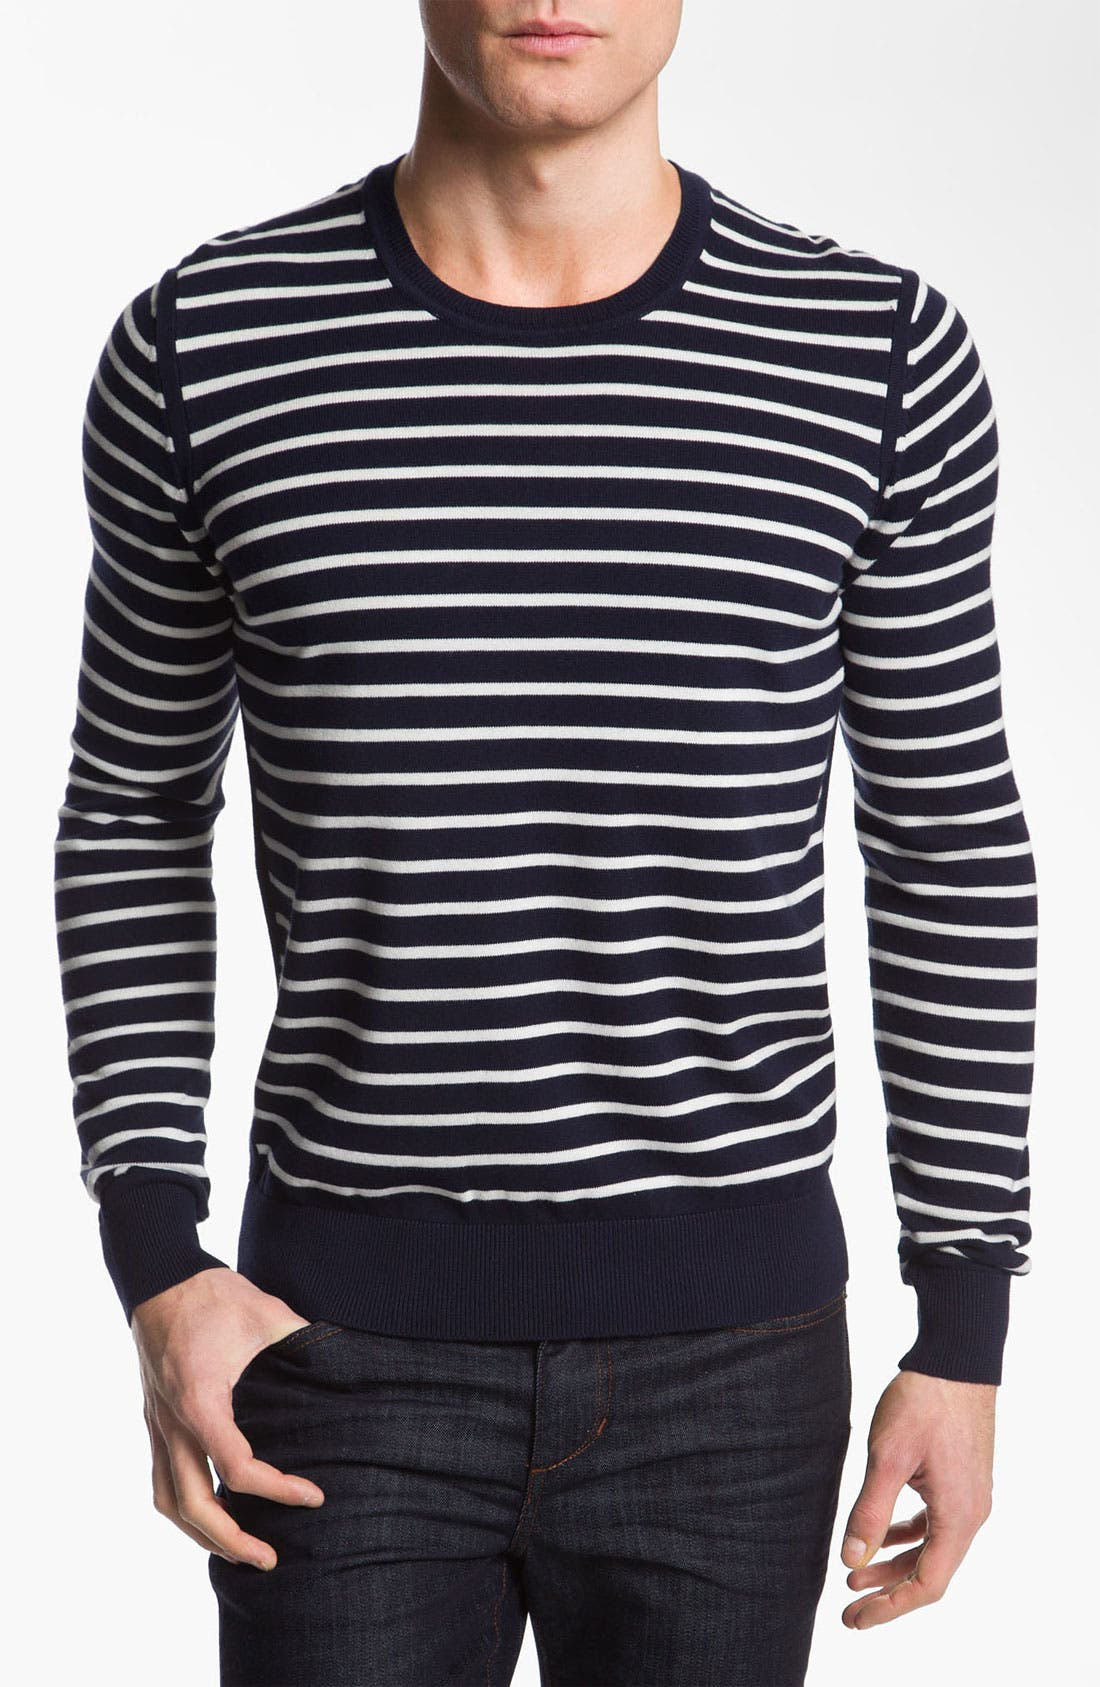 Alternate Image 1 Selected - Ben Sherman Crewneck Sweater